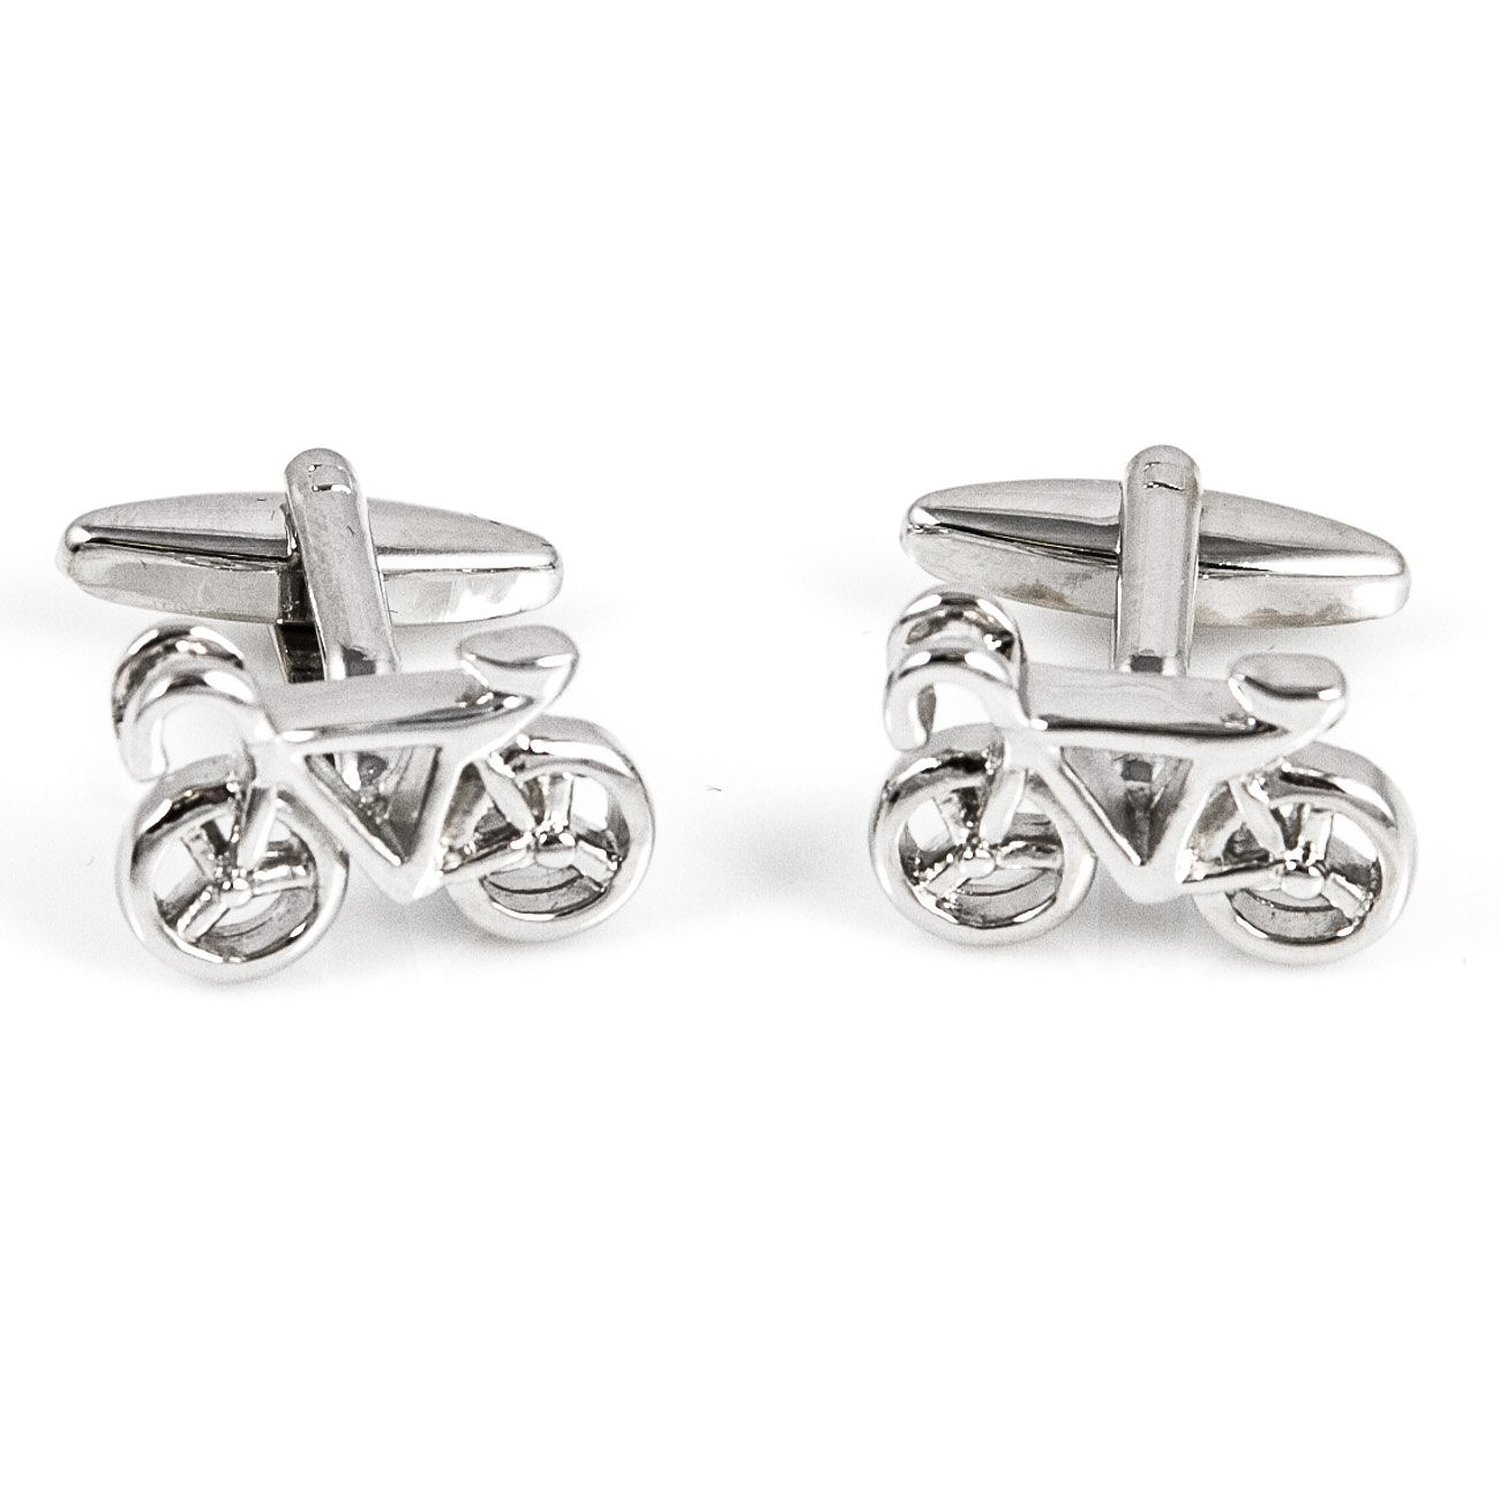 Mens Bike Bicycle Rider Biker Assorted 4 Pairs Of Shirt Cufflinks In A Presentation Gift Box Suit Wedding Business